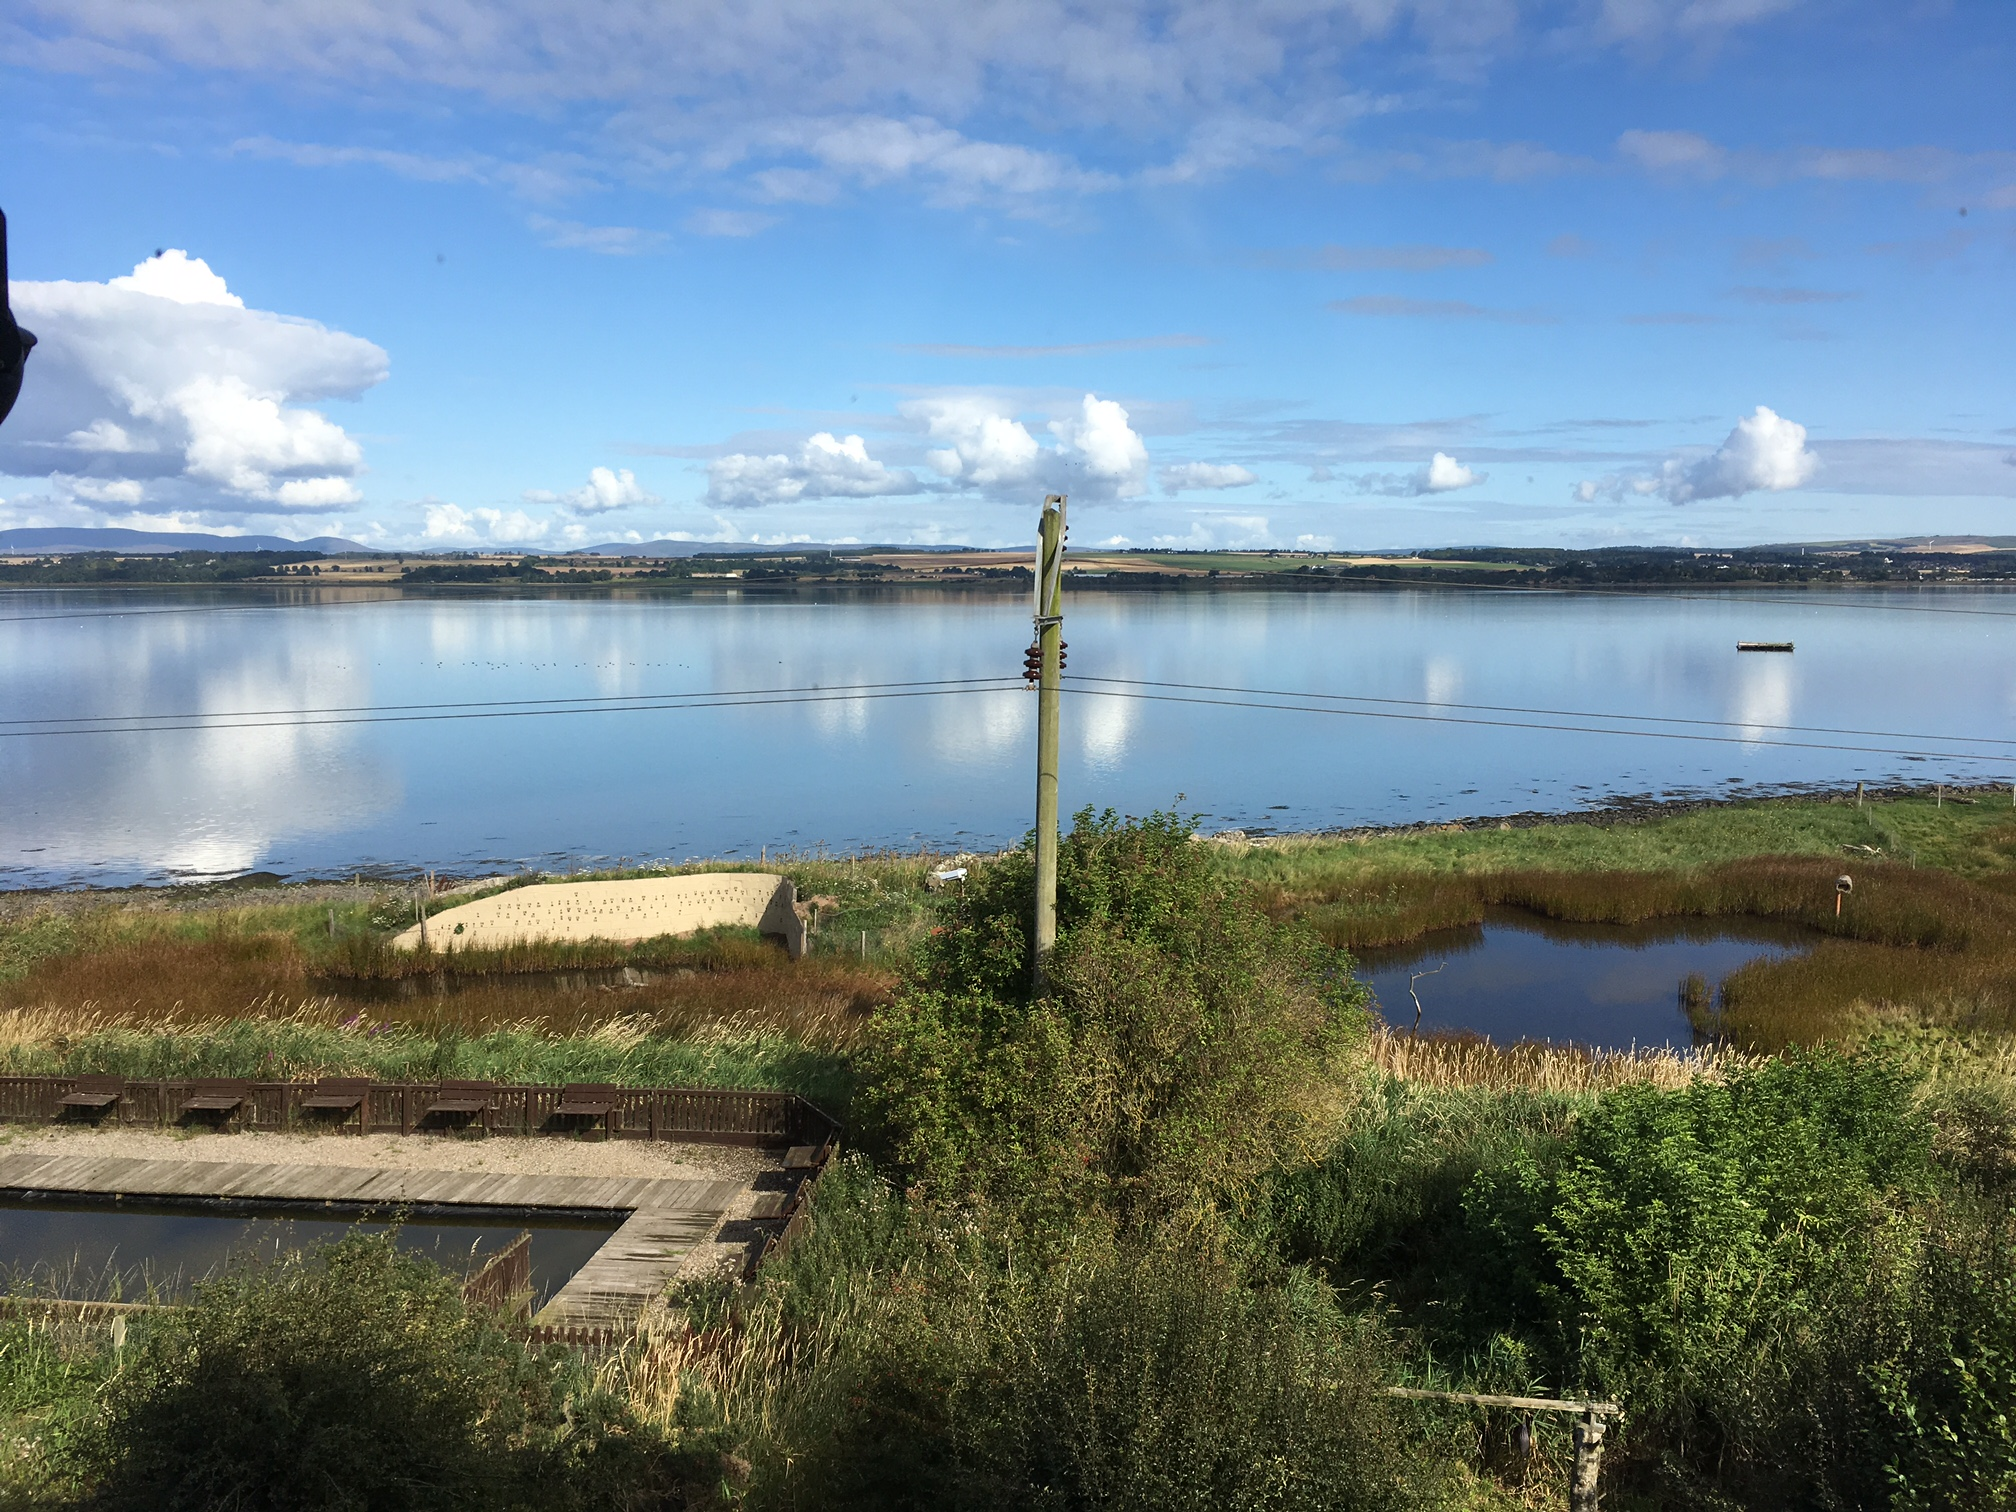 When is the best time to visit Montrose Basin?